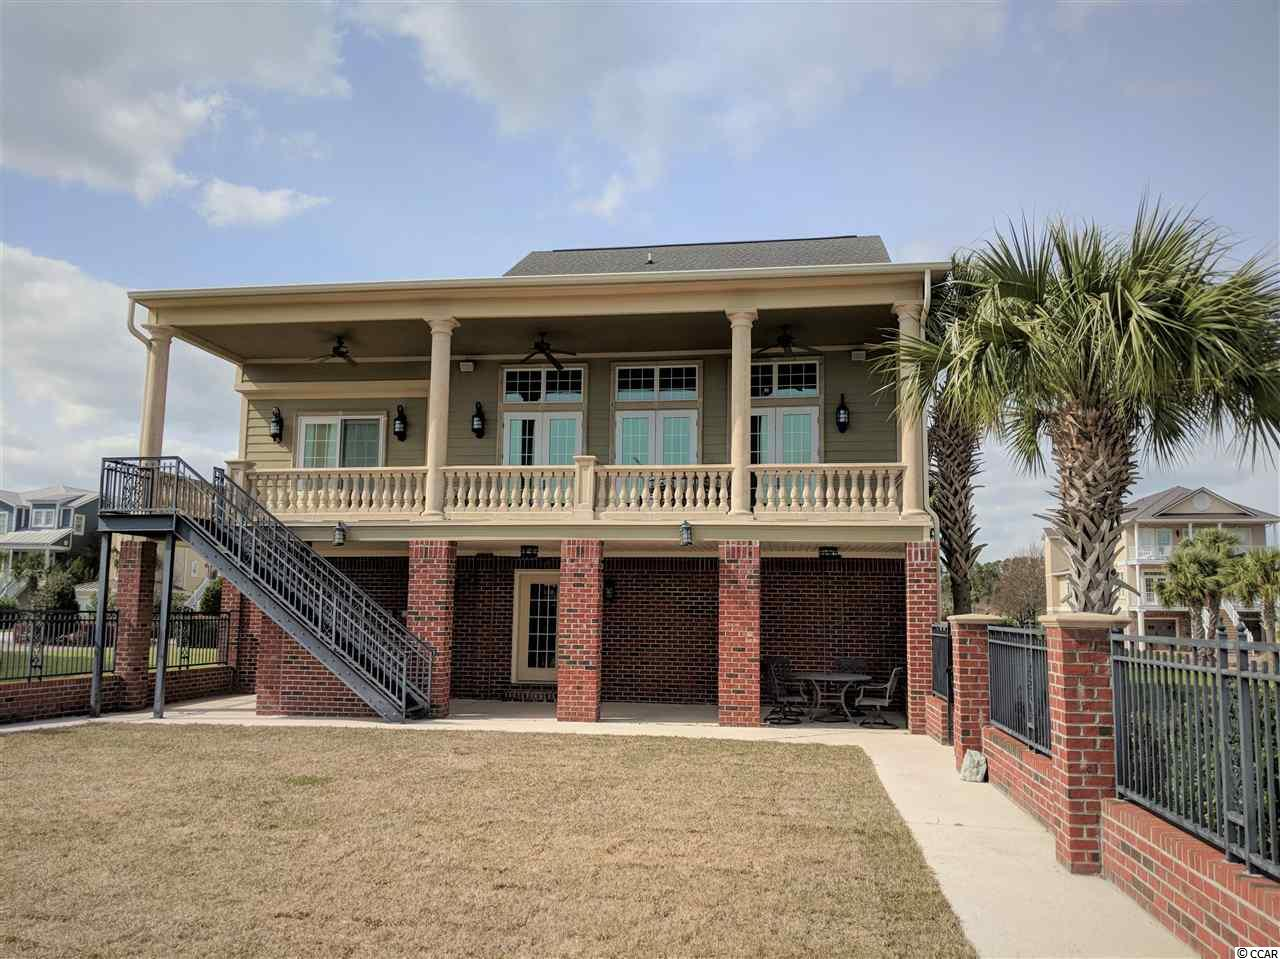 This immaculate Intracoastal Waterway home is a must see!  Located in the wonderful gated community of Paradise Island ! Luxurious living on an island located within 1.5 miles of Cherry Grove Beach and just south of the Swing Bridge!  Watch the yachts go by from your porch, and enjoy the beautiful Sunrises and Sunsets over the waterway.  Garage space under this home offers plenty of room for cars, golf cart, jet skis, workshop area, and storage.  Full bath and elevator in the garage. Living area offers spectacular architectural details with plenty of room for everyone!  8 ft high French Doors  provide amazing waterway views from inside as well as a huge porch across the rear of the home!  Chef's kitchen with Thermador gas range and griddle , double Thermador Ovens, and Sub Zero Refrigerator ! Hickory Cabinetry with granite countertops and a large island for entertaining guests in the kitchen as well.  Master bedroom on the main level offers waterway views with sliding doors to the rear porch... Master bath with custom tile jetted shower, and large whirlpool tub. Private water closet, Granite countertops, double vanity and huge walk in closet with custom cabinets.  Upstairs is just as amazing as the downstairs with 2 guest bedrooms, full bath, media or quiet reading loft.  TV and surround sound electronics convey with home. Washer/ Dryer also conveys.  Retirement Dream Home awaits you on Paradise Island!